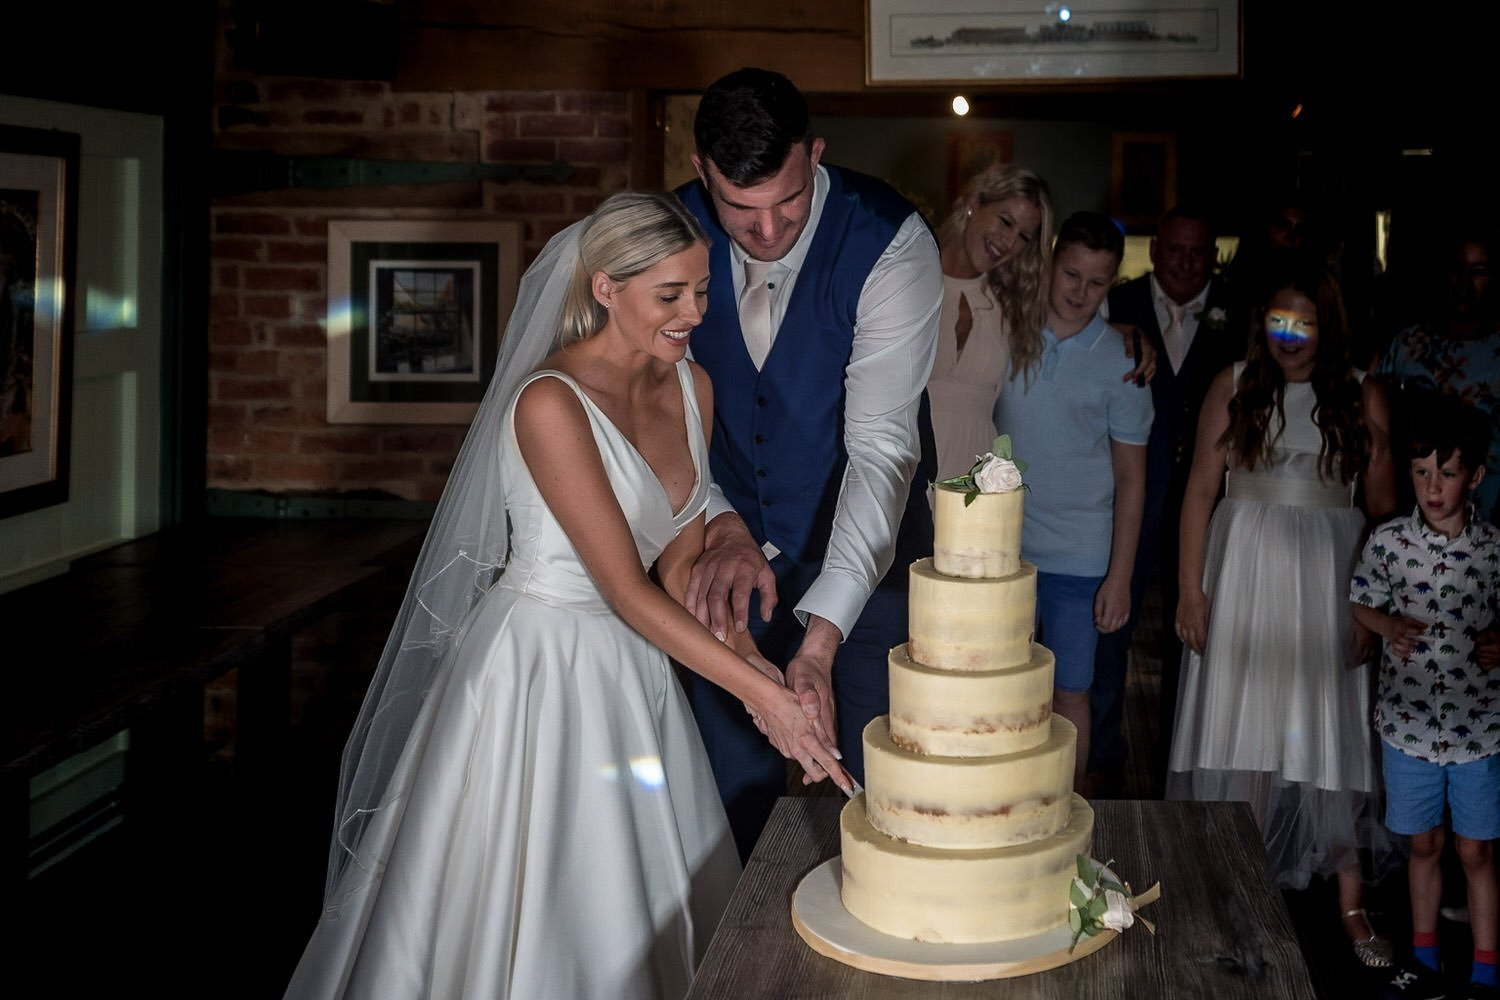 The Waterfront Market Harborough Lockwood Weddings Photography bride and groom cutting the cake together hands together on the knife